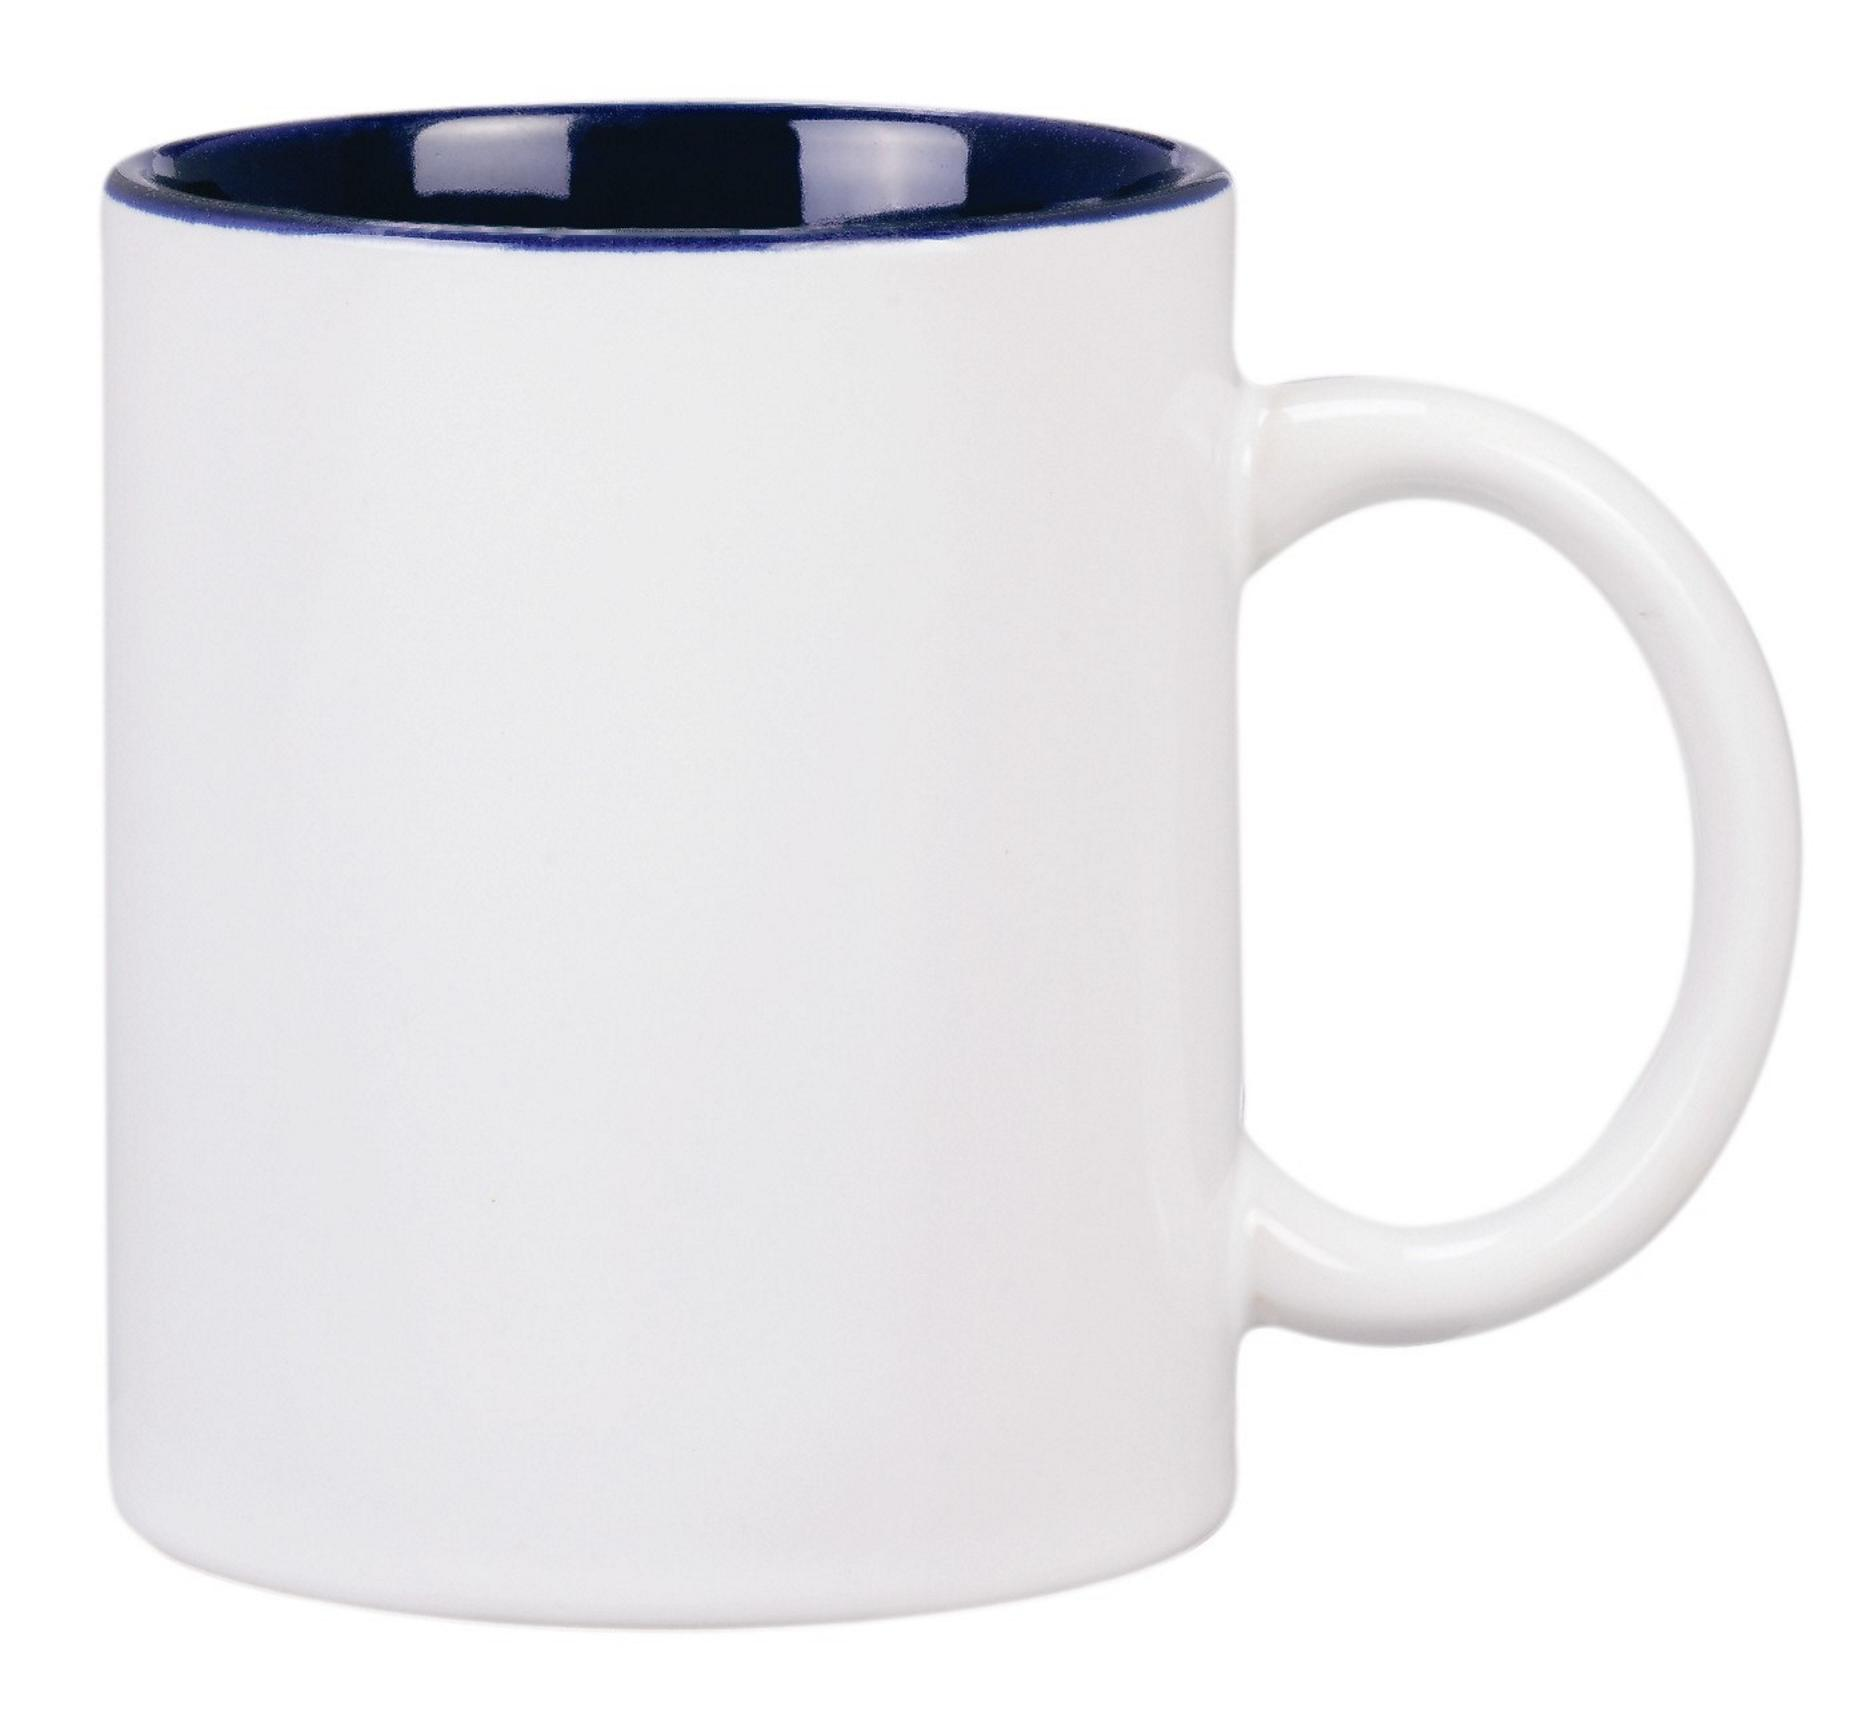 Colonial Coffee Mug White And Cobalt Blue Color Can Shaped